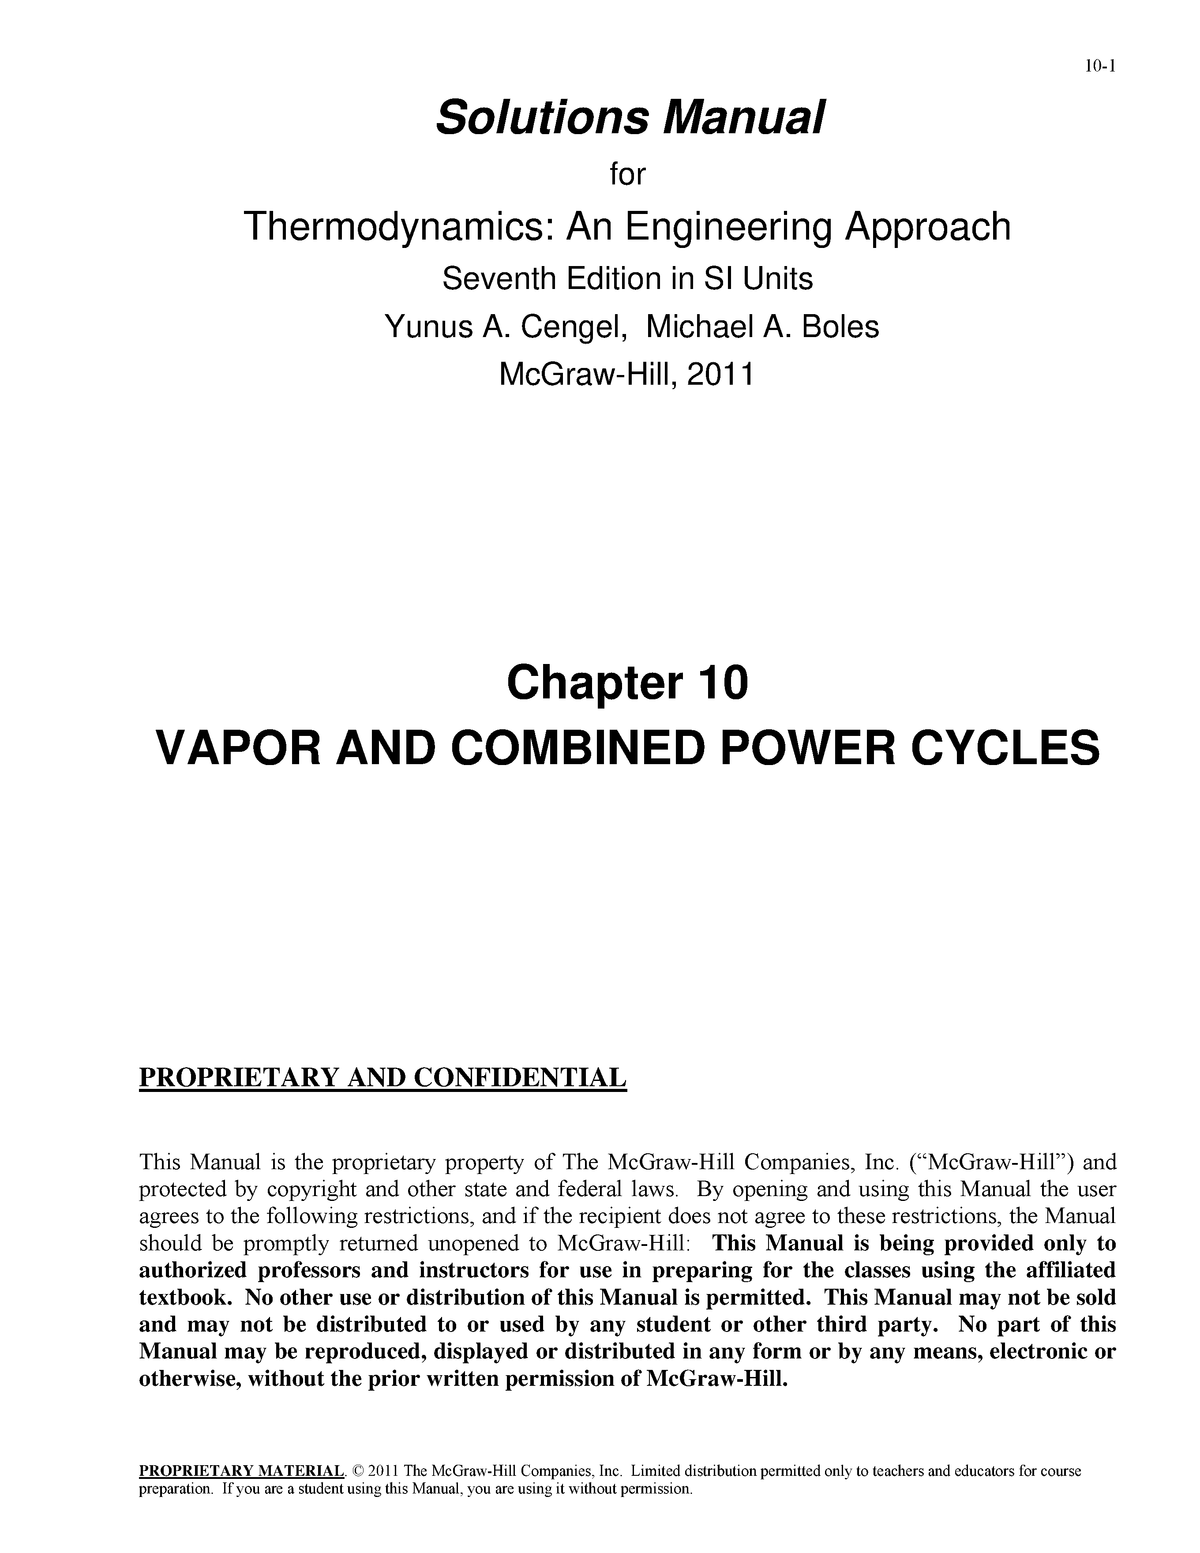 SM Chap10 - Solution manual Thermodynamics: an Engineering Approach